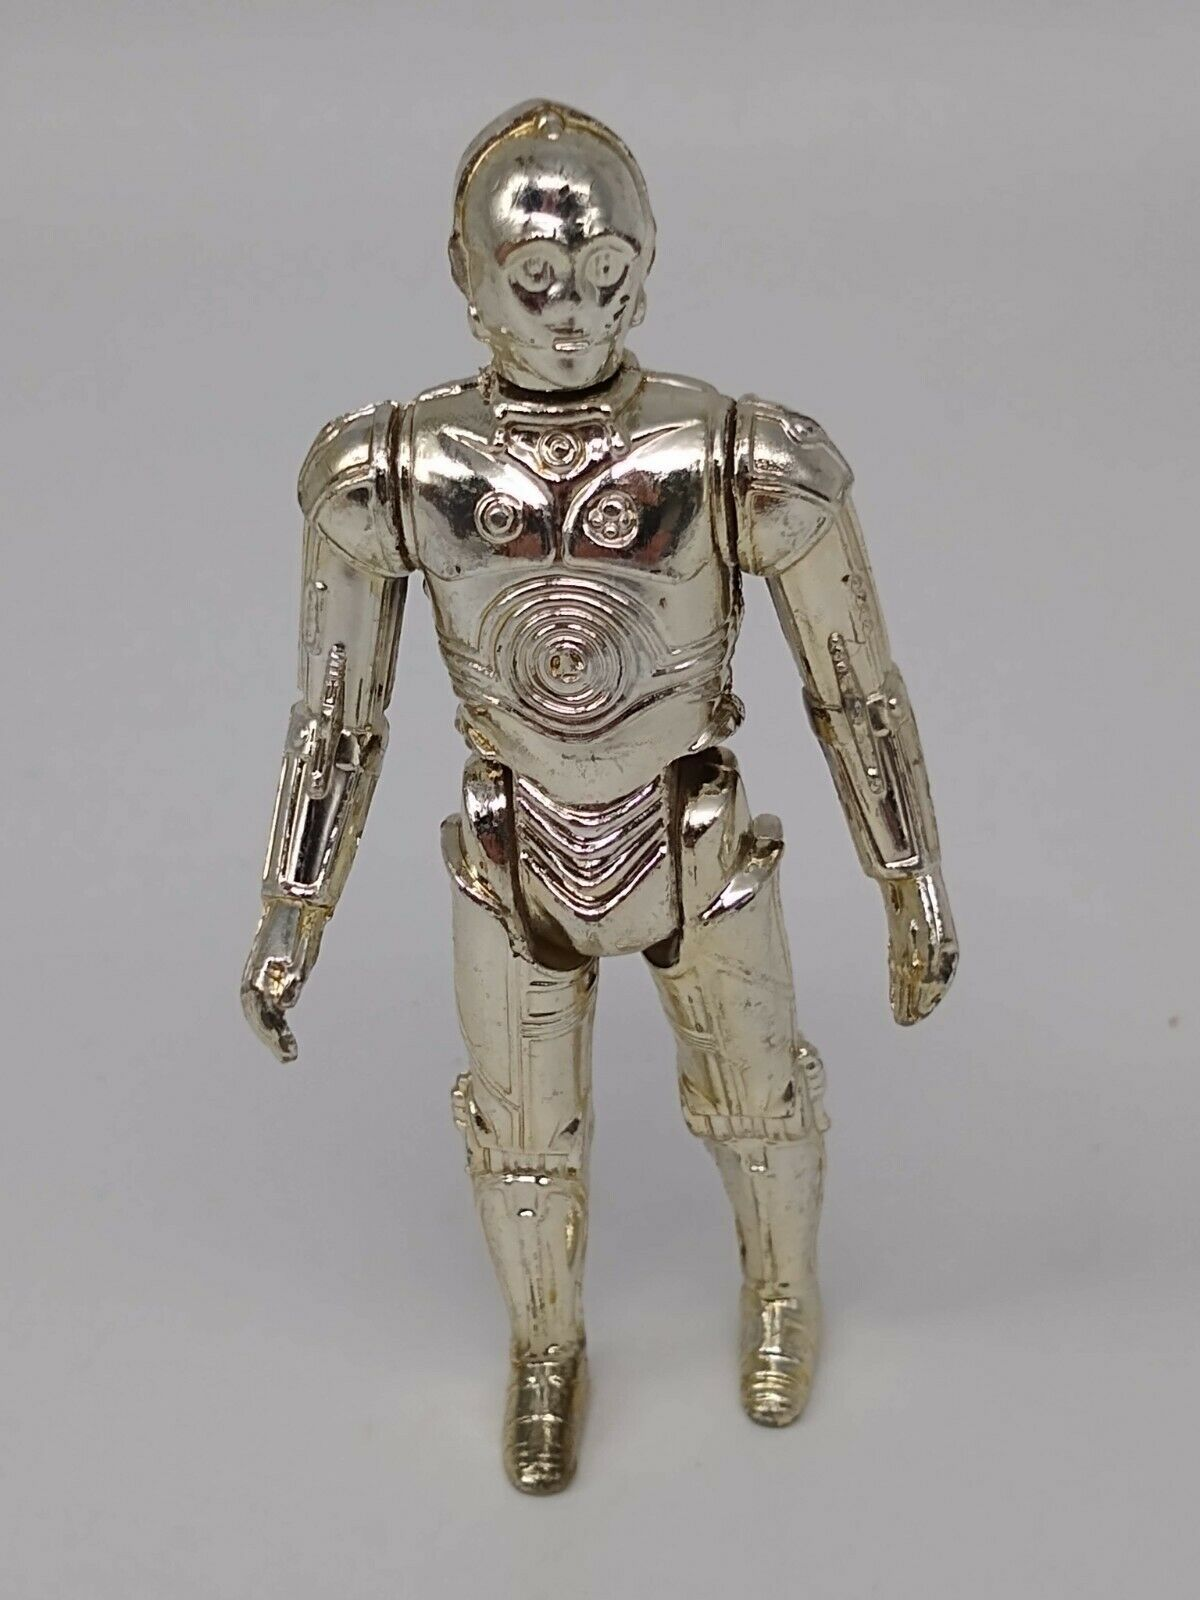 Vintage Star Wars Silver C3PO - Complete - Looks like Gold faded to Silver